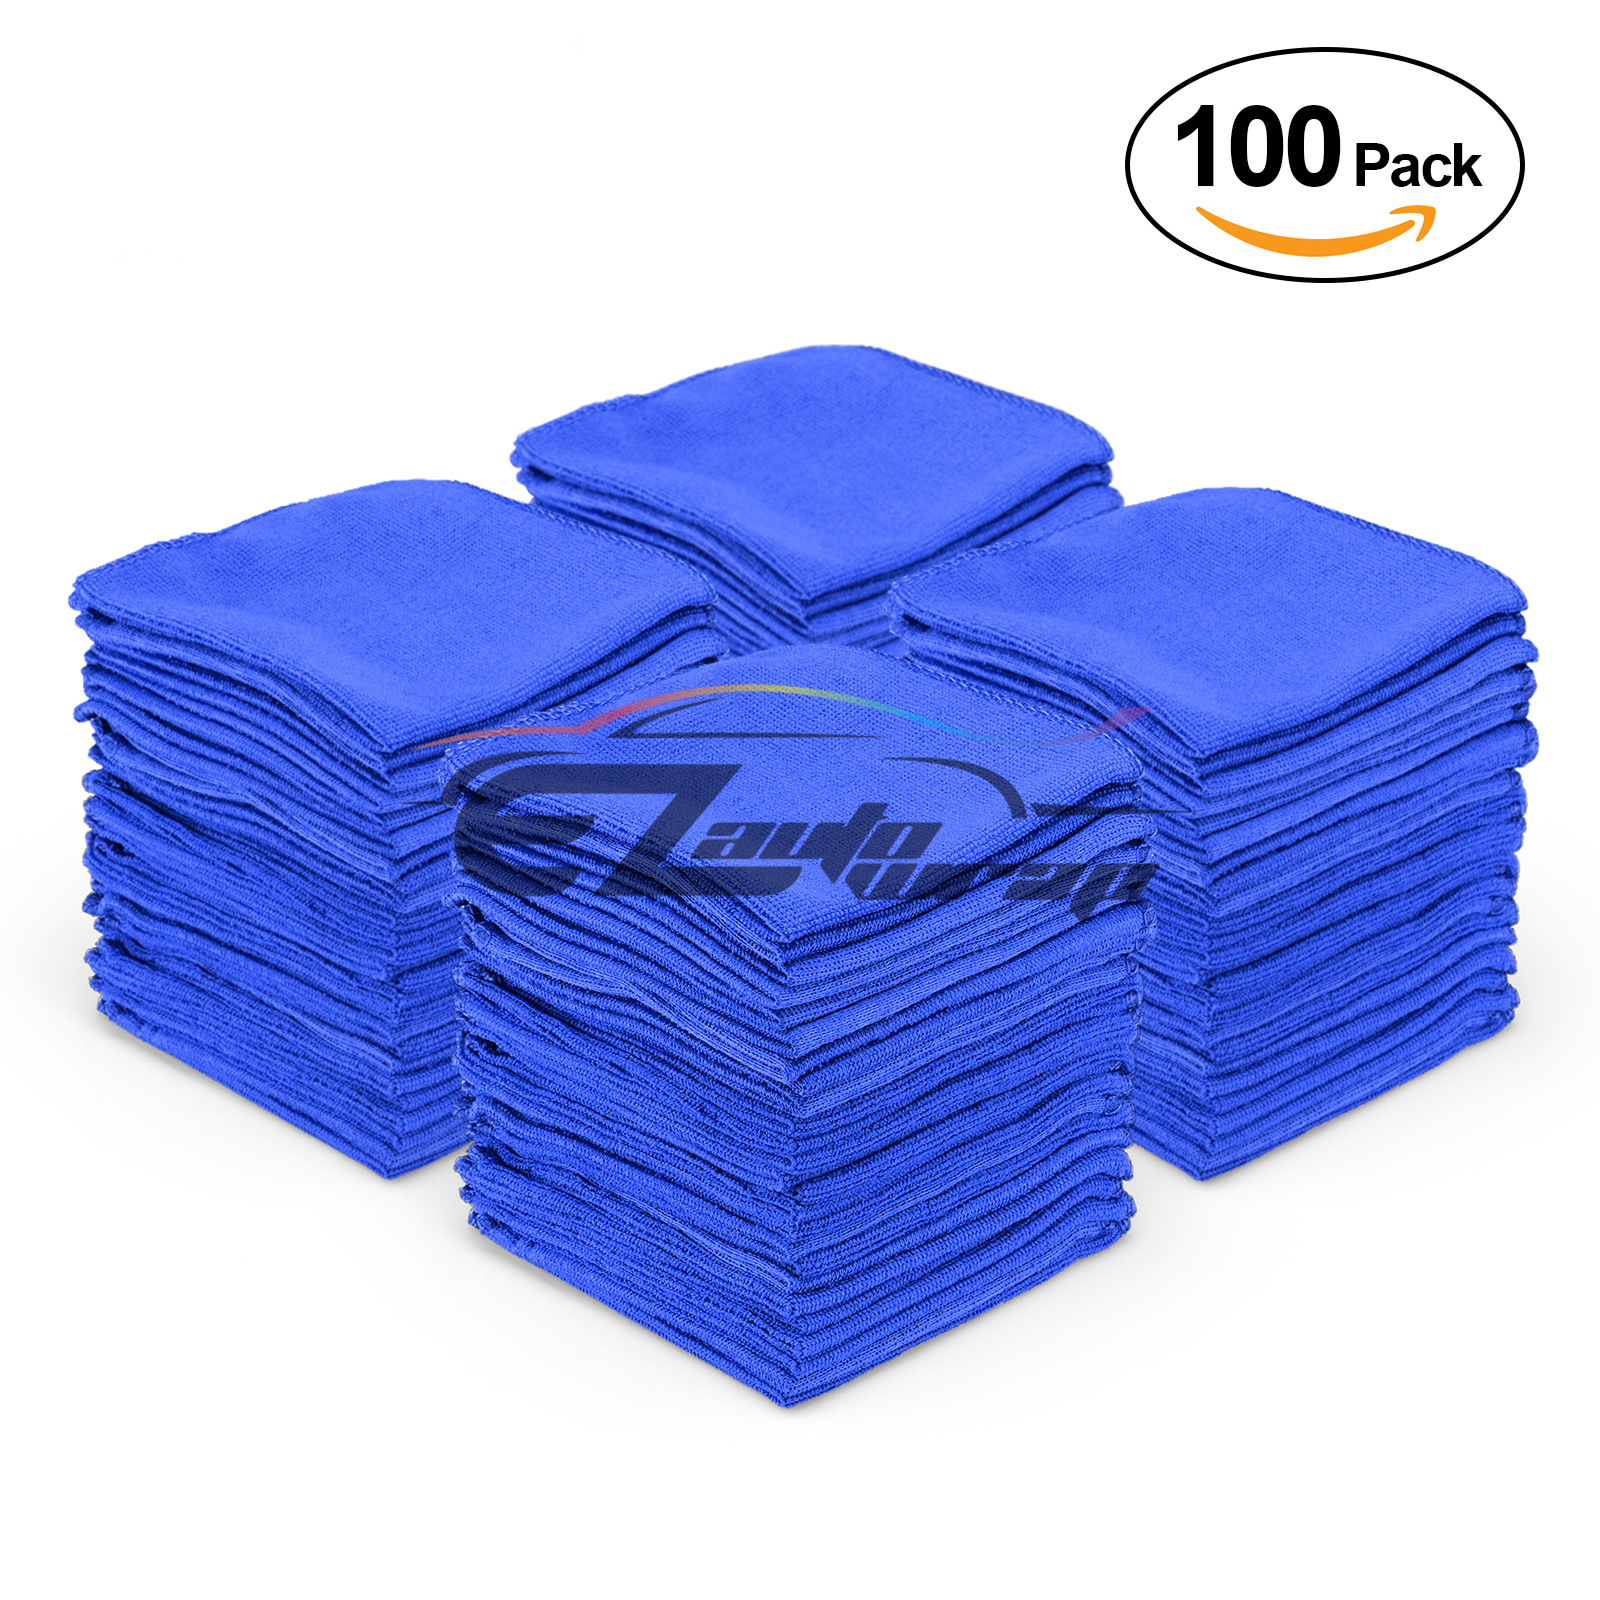 100 Pcs Microfiber Cleaning Cloth Towel Rag Car Polishing No Scratch Auto Detailing